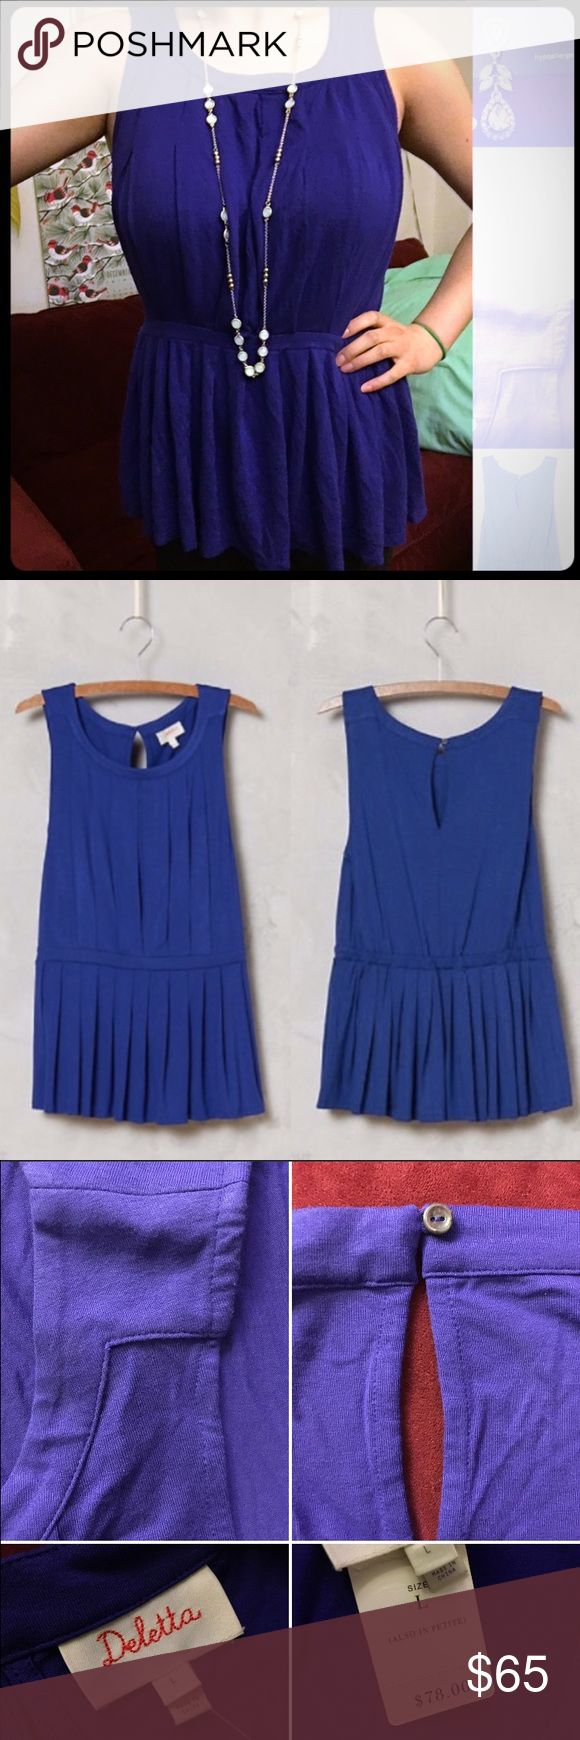 Anthropologie Pleated Peplum Tank, RoyalBlue Anthropologie Pleated Peplum Tank in Royal Blue. Super cute top! Fits well & is very flattering! Accentuates the waist. Beautiful stitching & thoughtful details such as the button in the back. Soft fabric, stretchy waist. It's so versatile & can be dressed up or down. I've received a lot of compliments, & the pictures just don't do it justice! Sophisticated yet subtly sexy. Love! I bought two different sizes & didn't have time to return one. By…